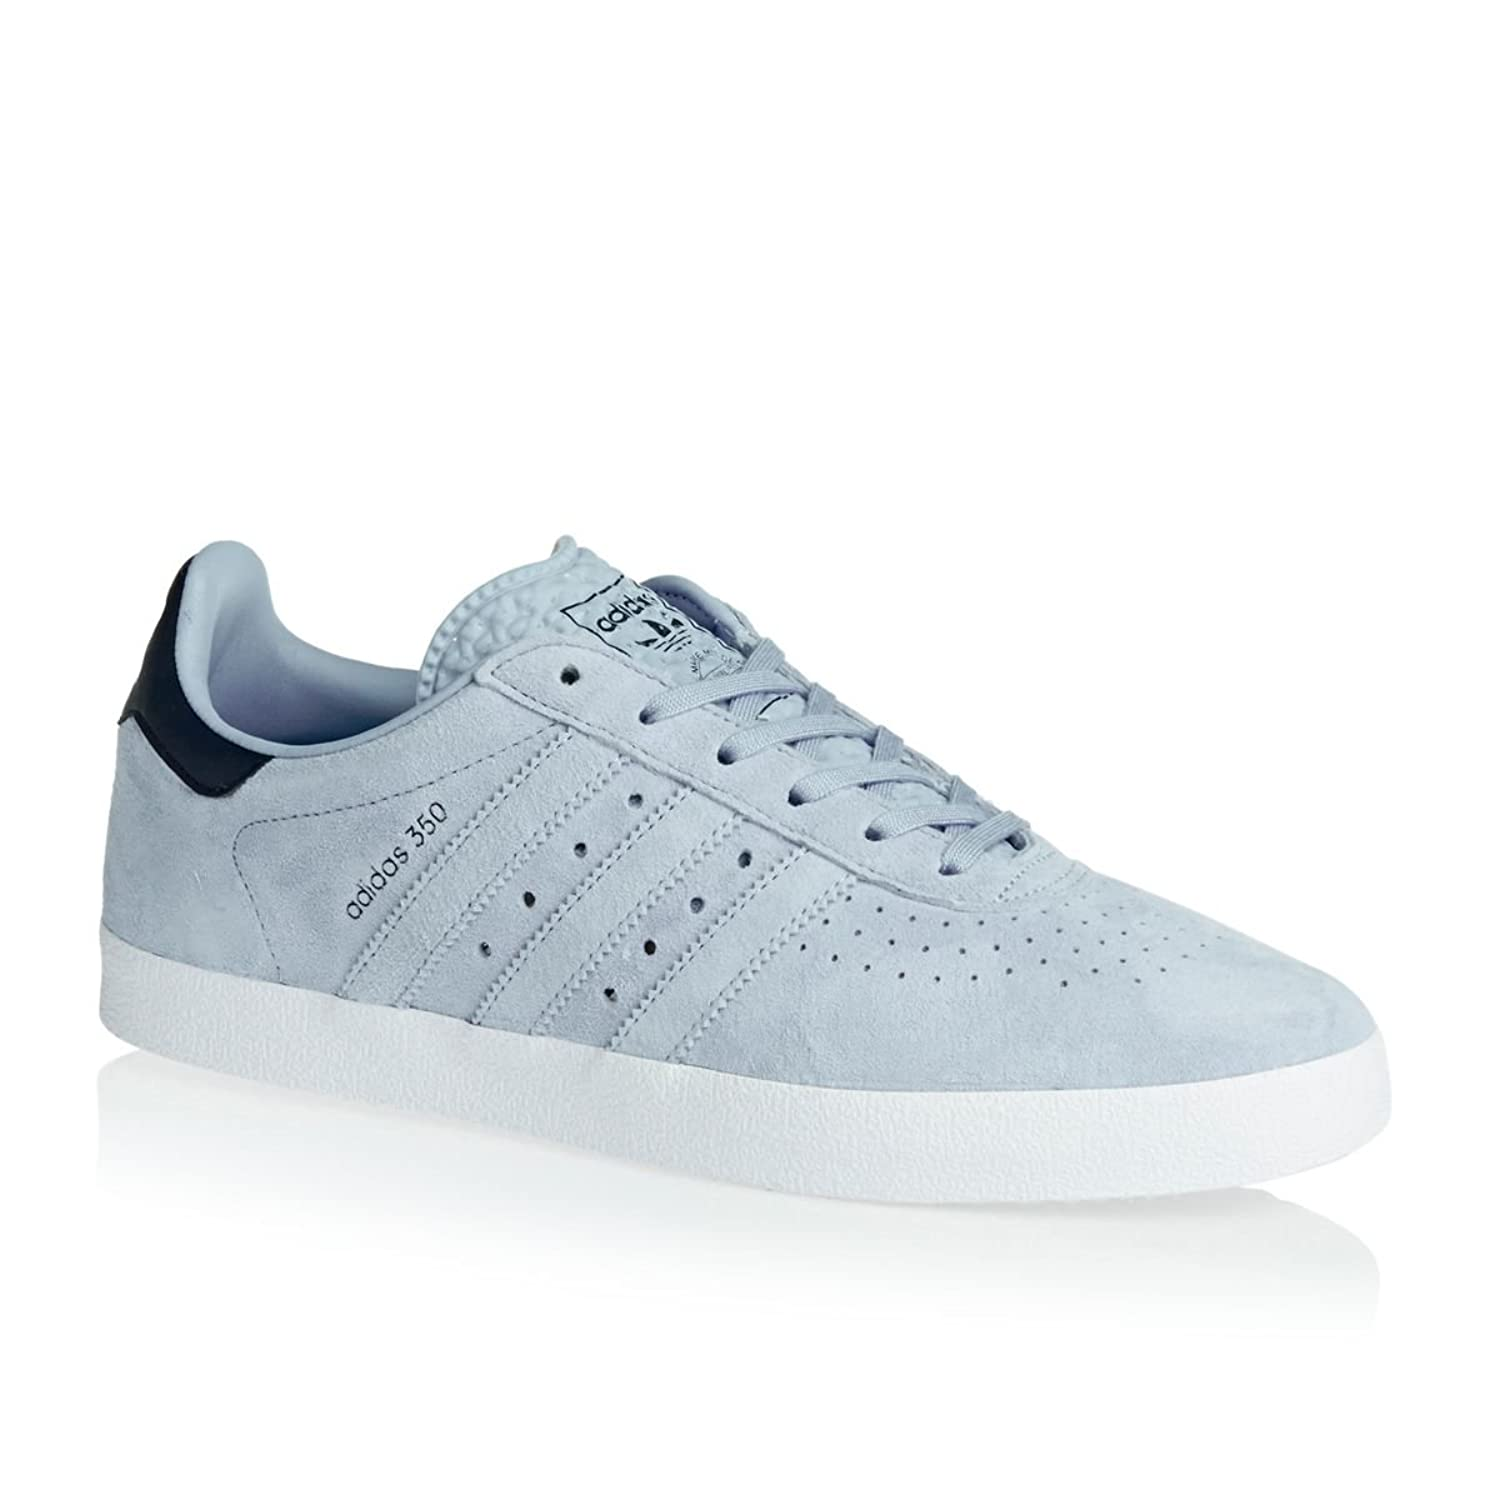 006dd6130 adidas Men s 350 Fitness Shoes  Amazon.co.uk  Shoes   Bags